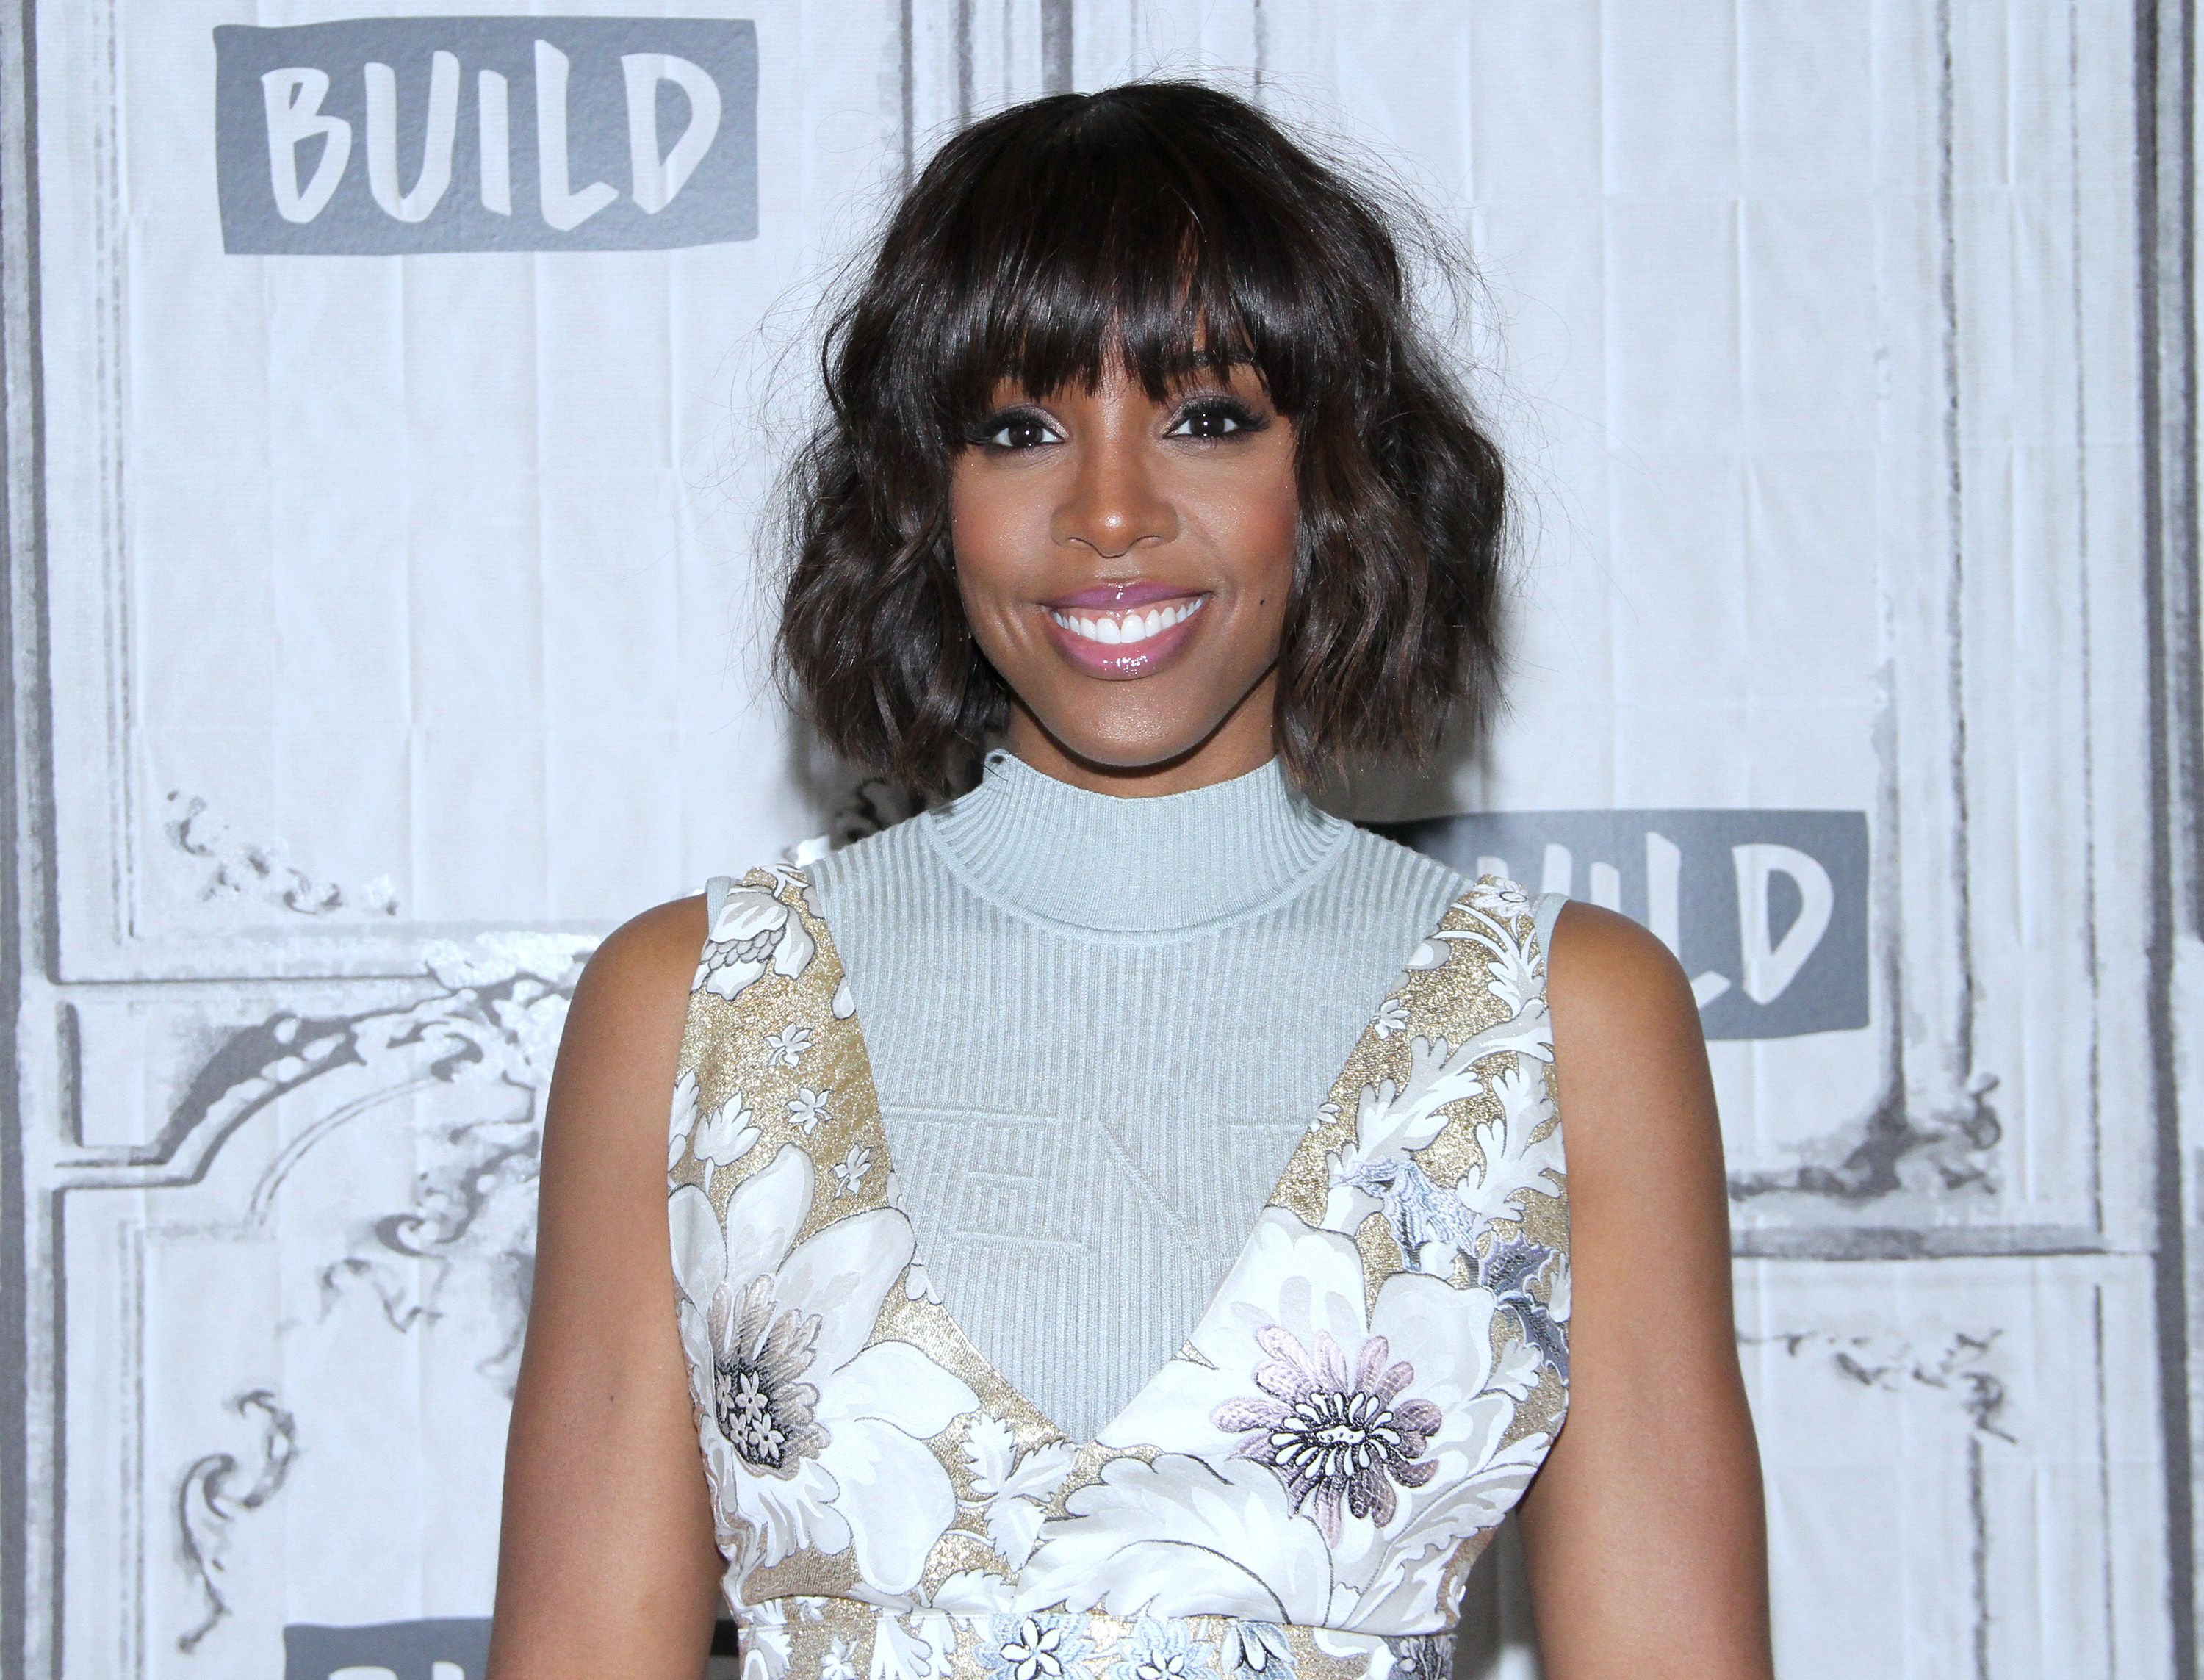 """Kelly Rowland appeared to promote """"Whoa, Baby!"""" at the BUILD Series at Build Studio on April 11, 2017   Photo: Getty Images"""